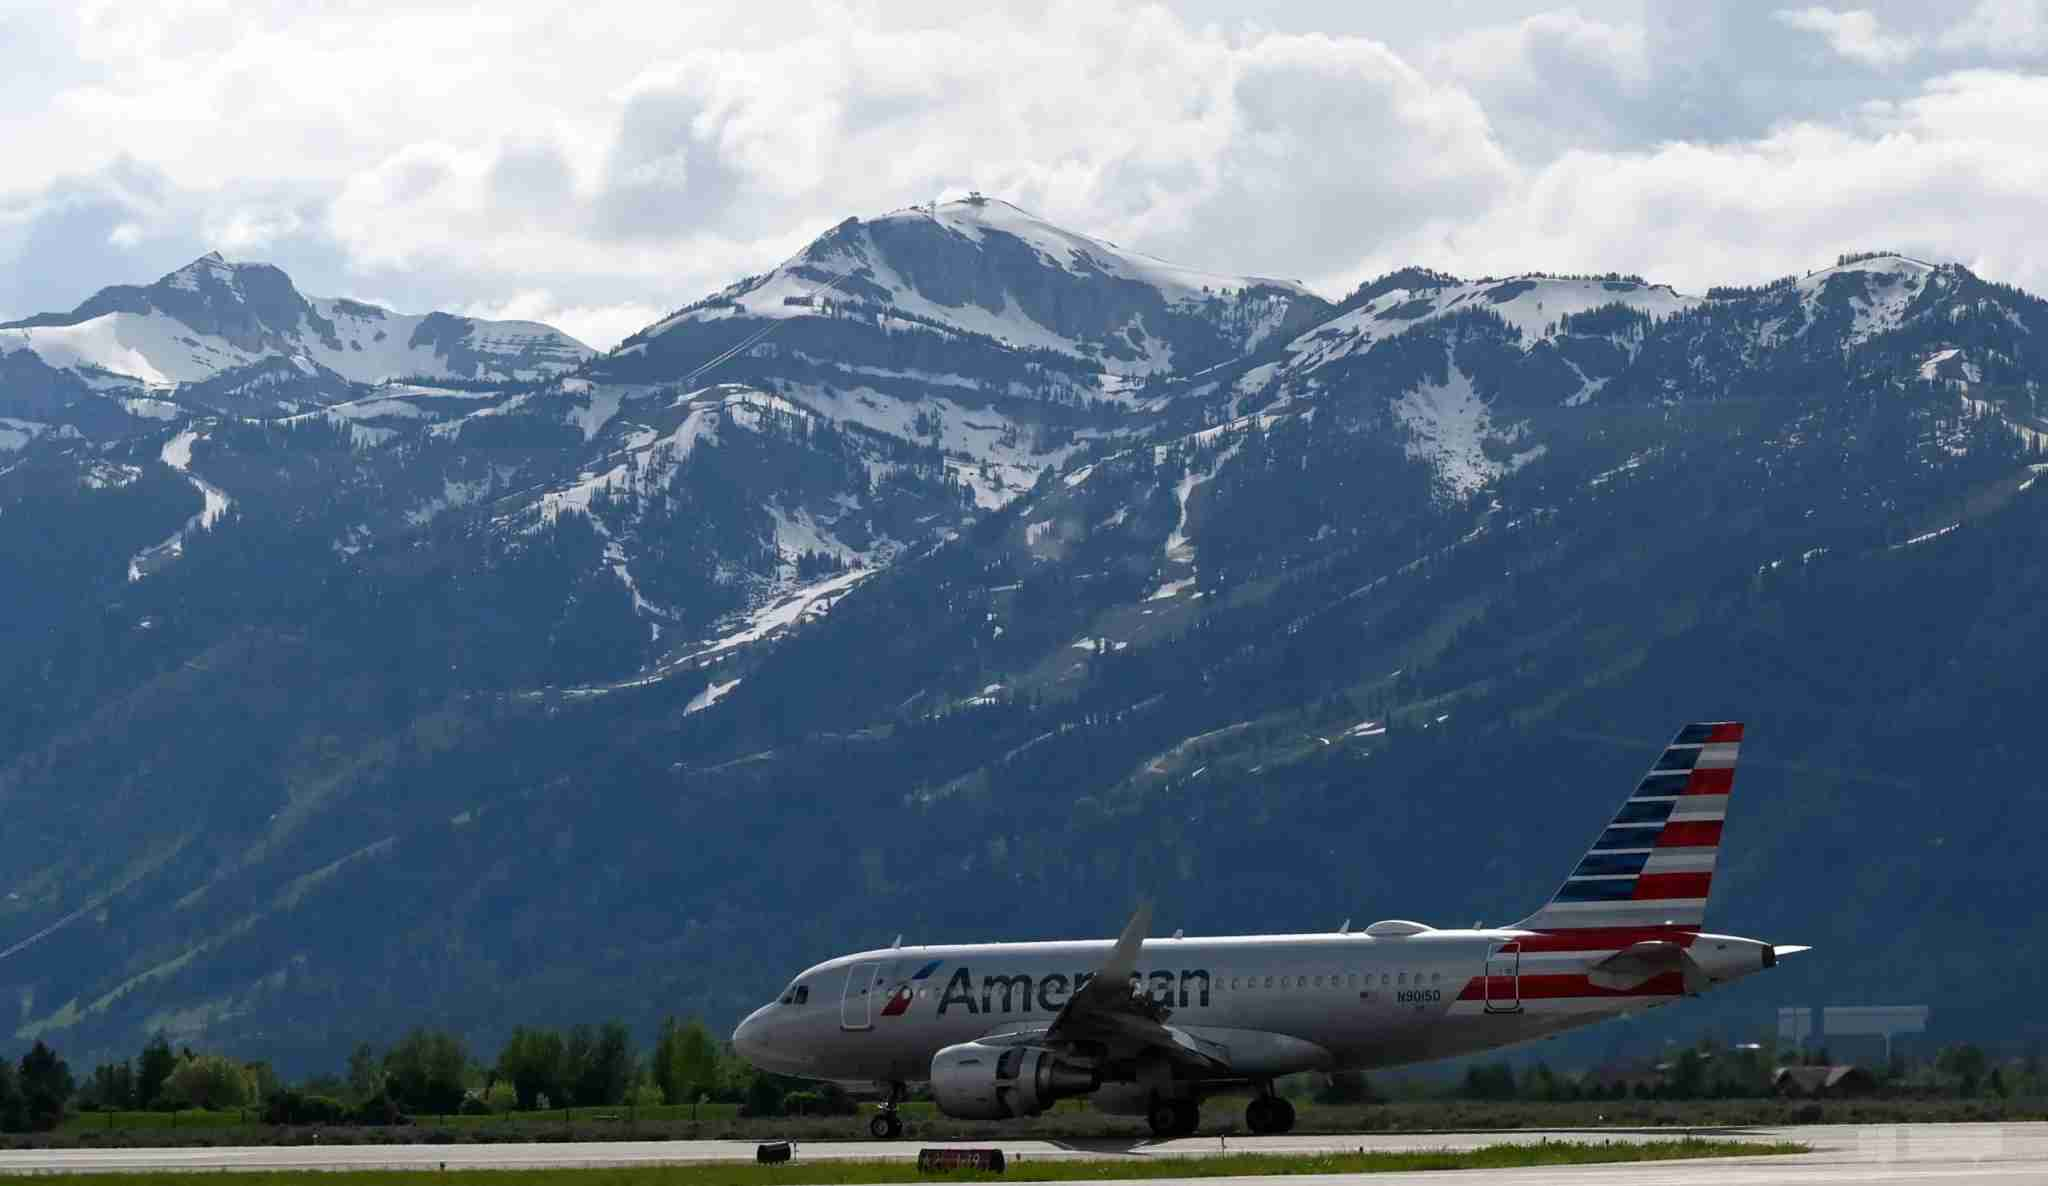 An Airbus A319-115 of American Airlines on the tarmac at off from Jackson Hole Airport in Grand Teton National Park, Wyoming, on June 13, 2019. (Photo by Daniel SLIM / AFP) (Photo credit should read DANIEL SLIM/AFP via Getty Images)